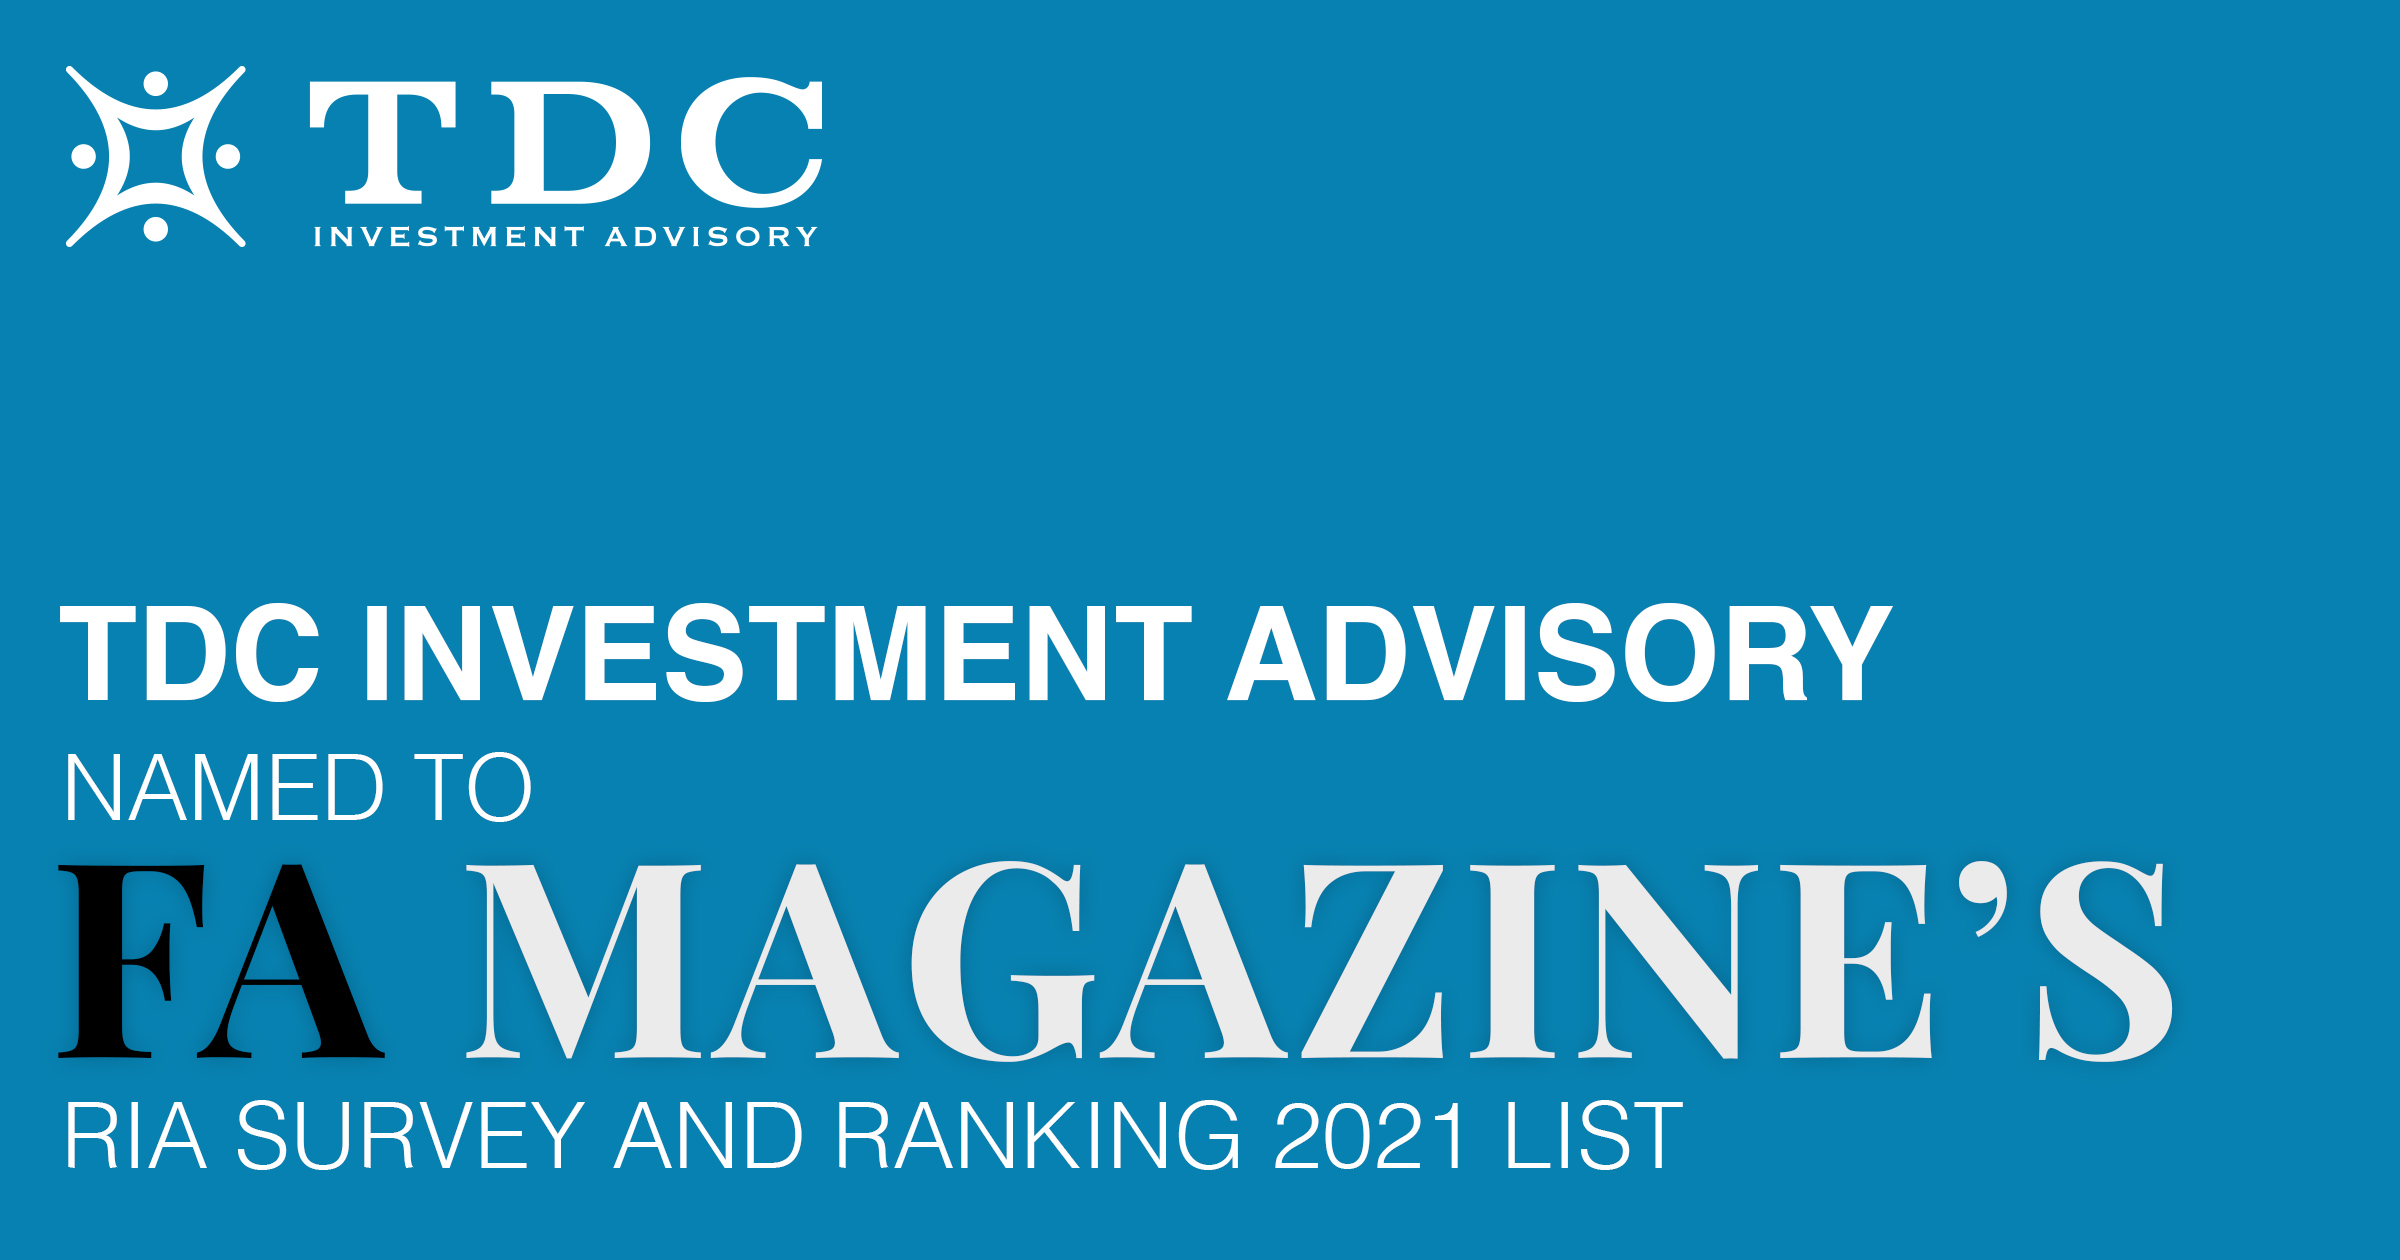 TDC Investment Advisory was Recently Named to Financial Advisor Magazine's 2021 RIA Survey and Ranking List